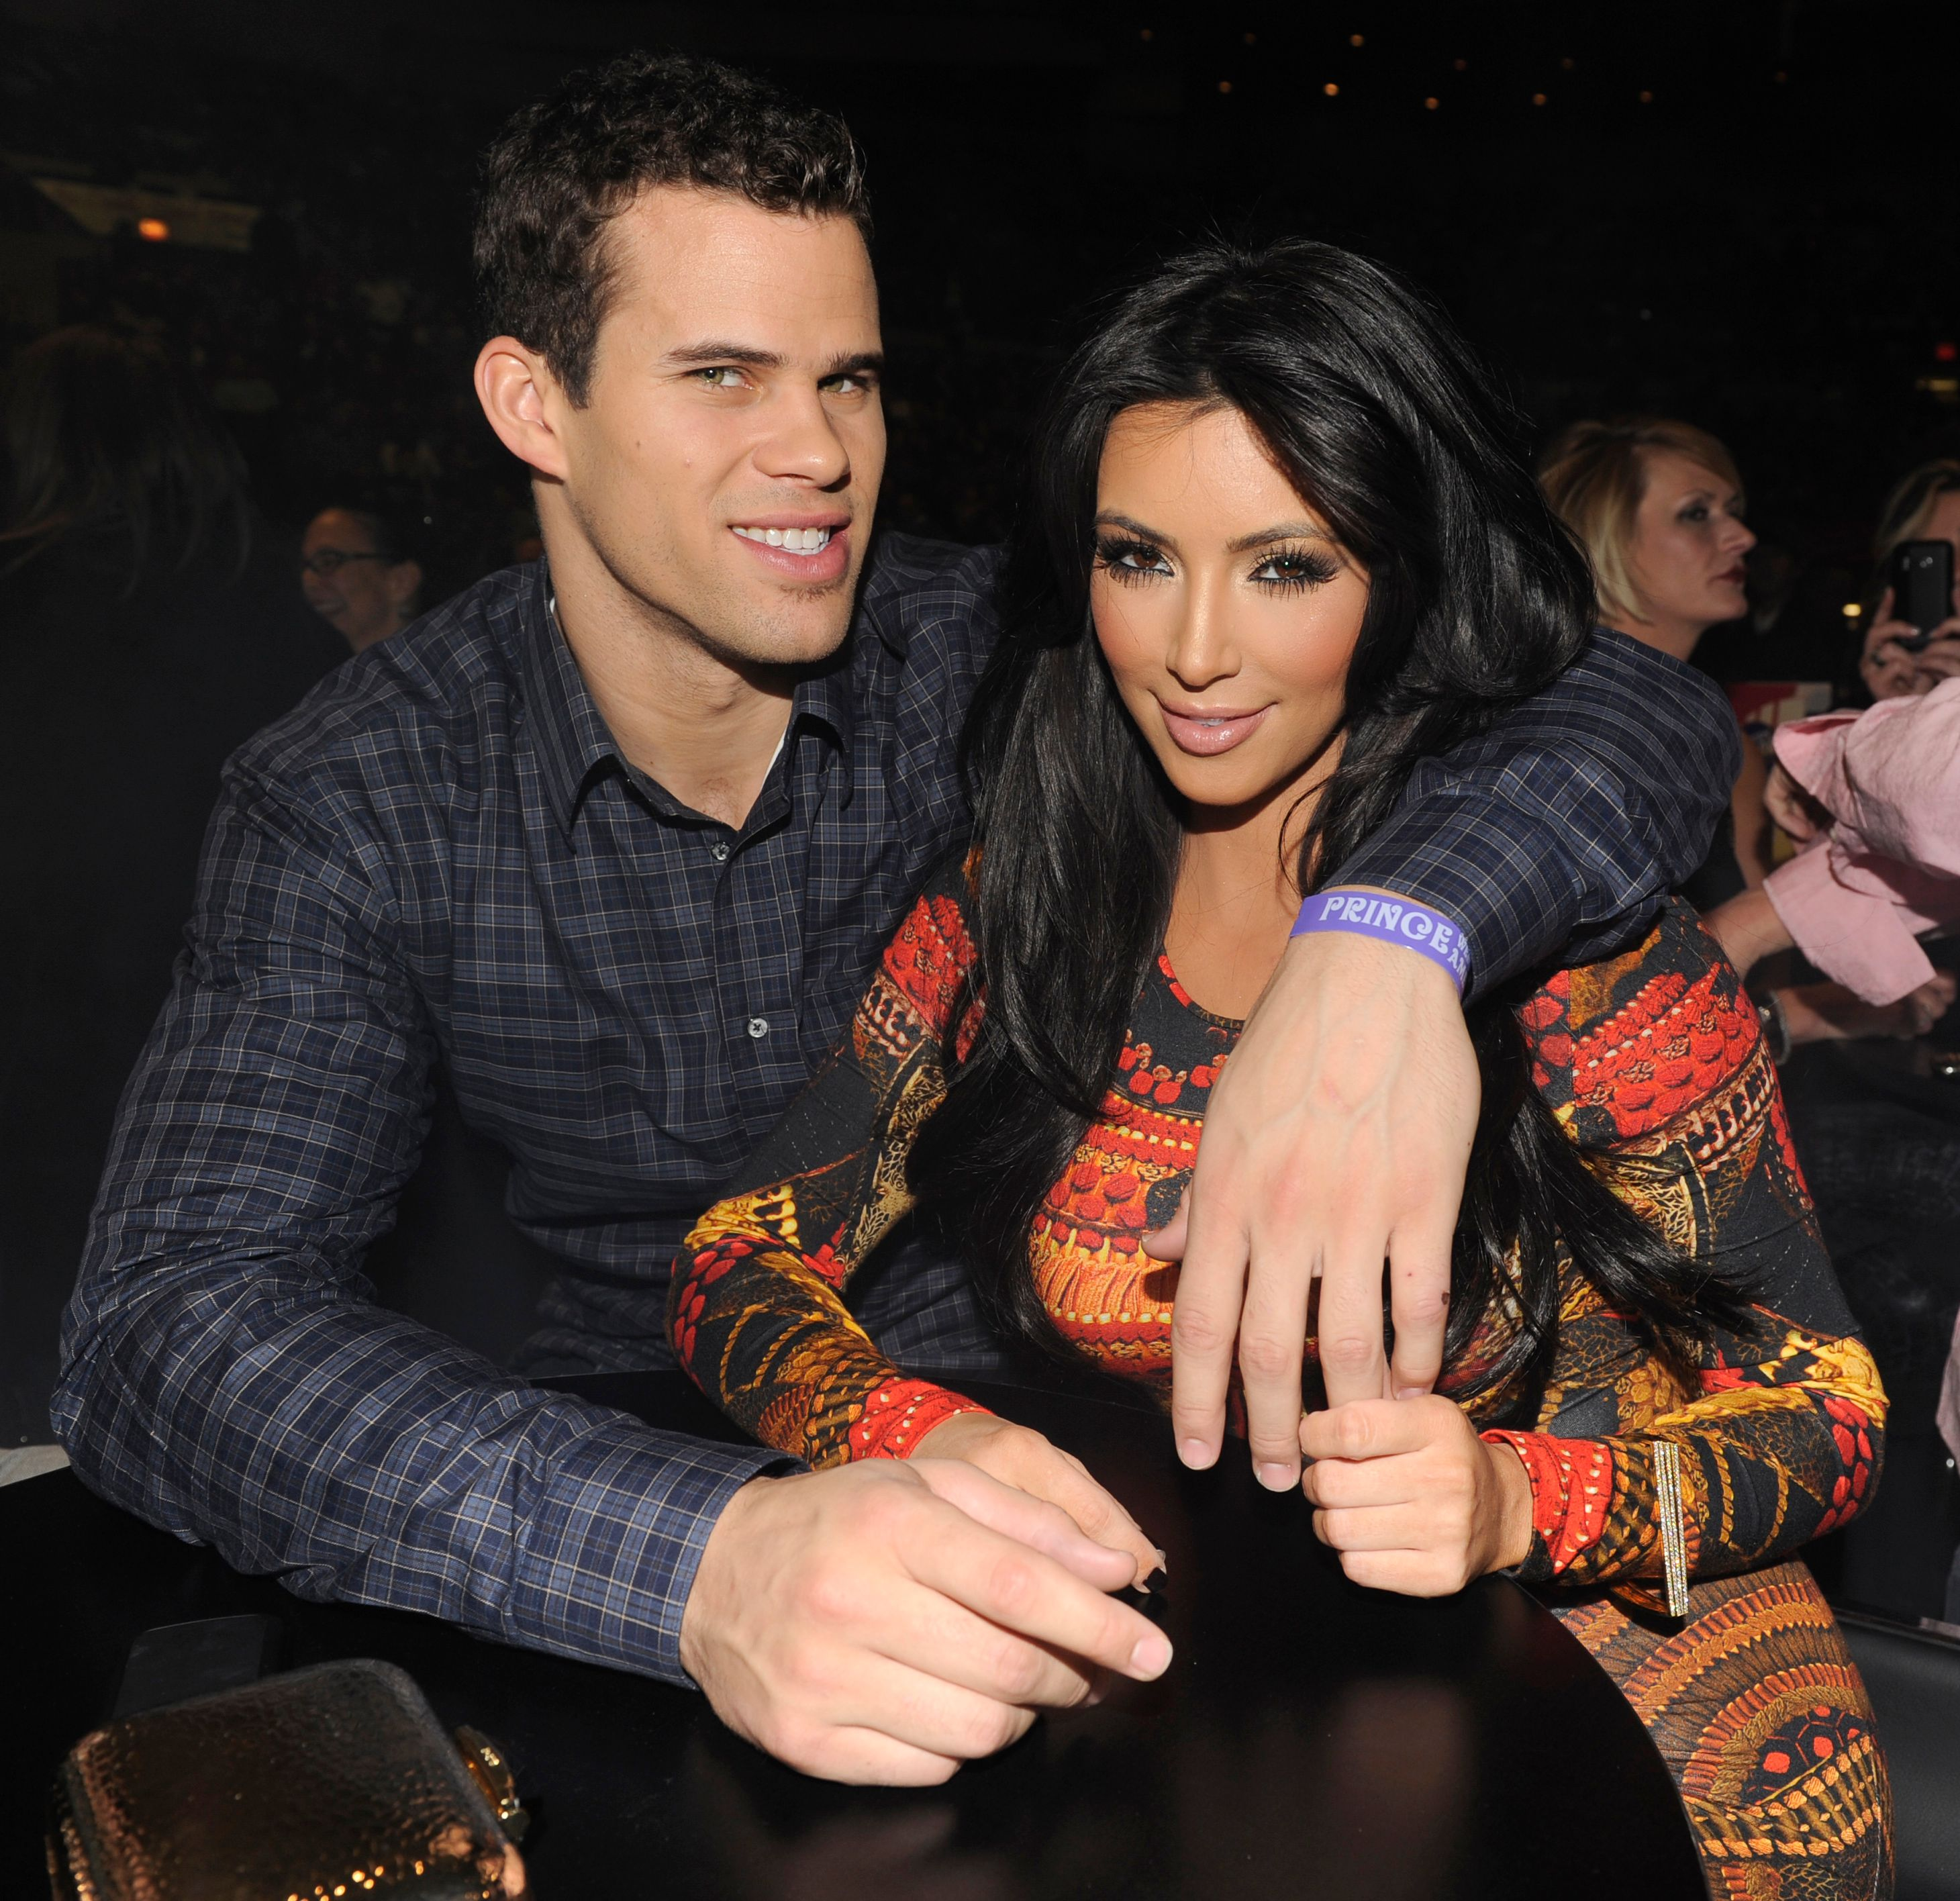 """Kris Humphries and Kim Kardashian at Prince's """"Welcome 2 America"""" performance in 2011 in New York City 